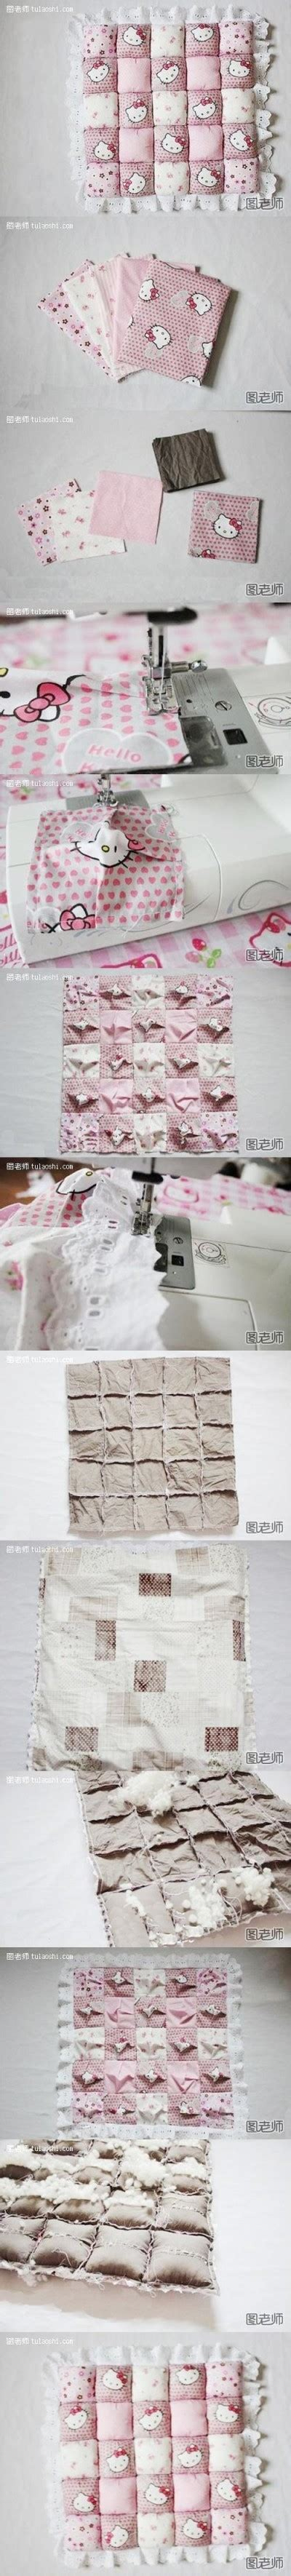 How To Hump A Pillow Step By Step by How To Make Lovely Pillow Step By Step Diy